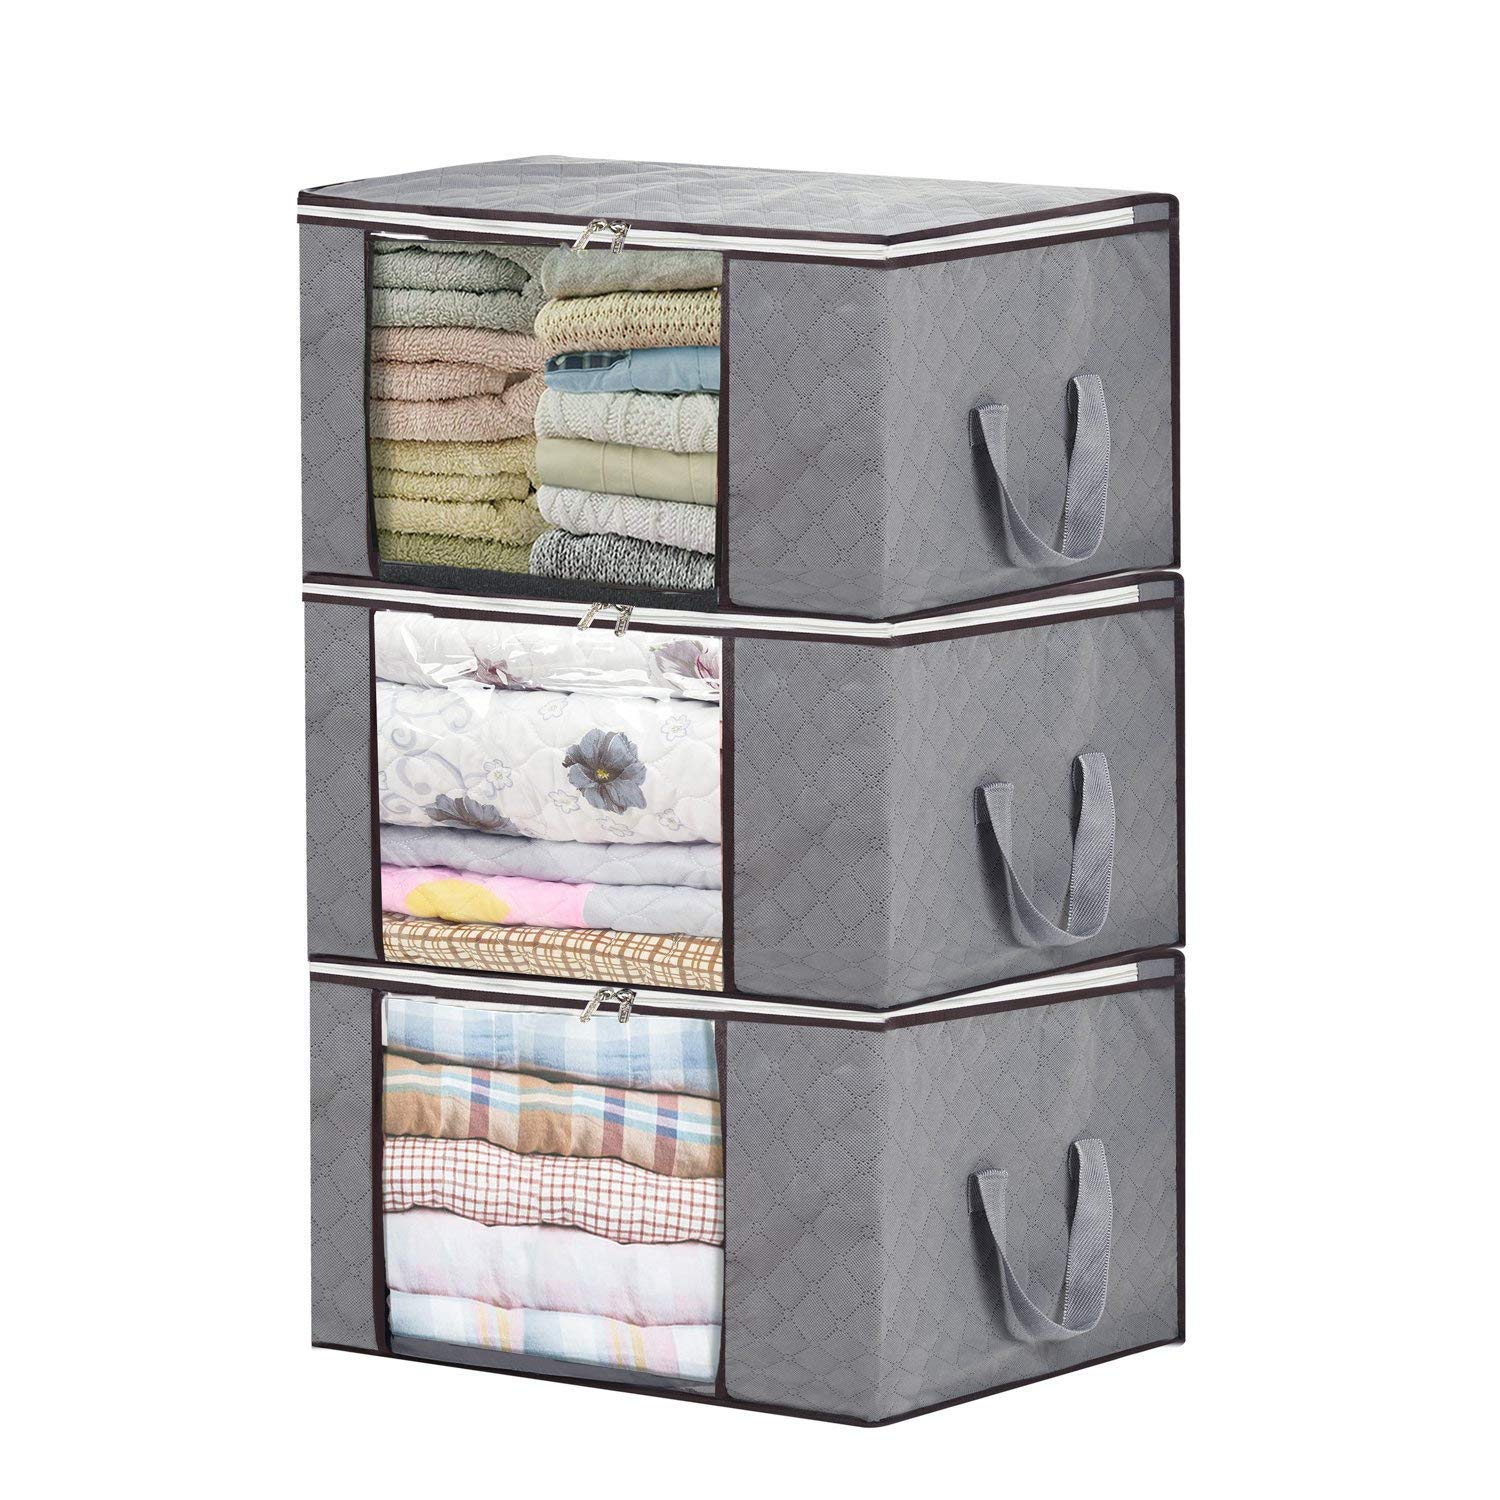 Storage Bin Clothing Organizer Bags, 3 Pcs Large Capacity Bamboo Charcoal Quilt Storage Containers with Large Clear Window for Comforters, Blankets, Bedding, Duvets, Clothes, Quilts, Pillows, Sweaters SKY DANCER